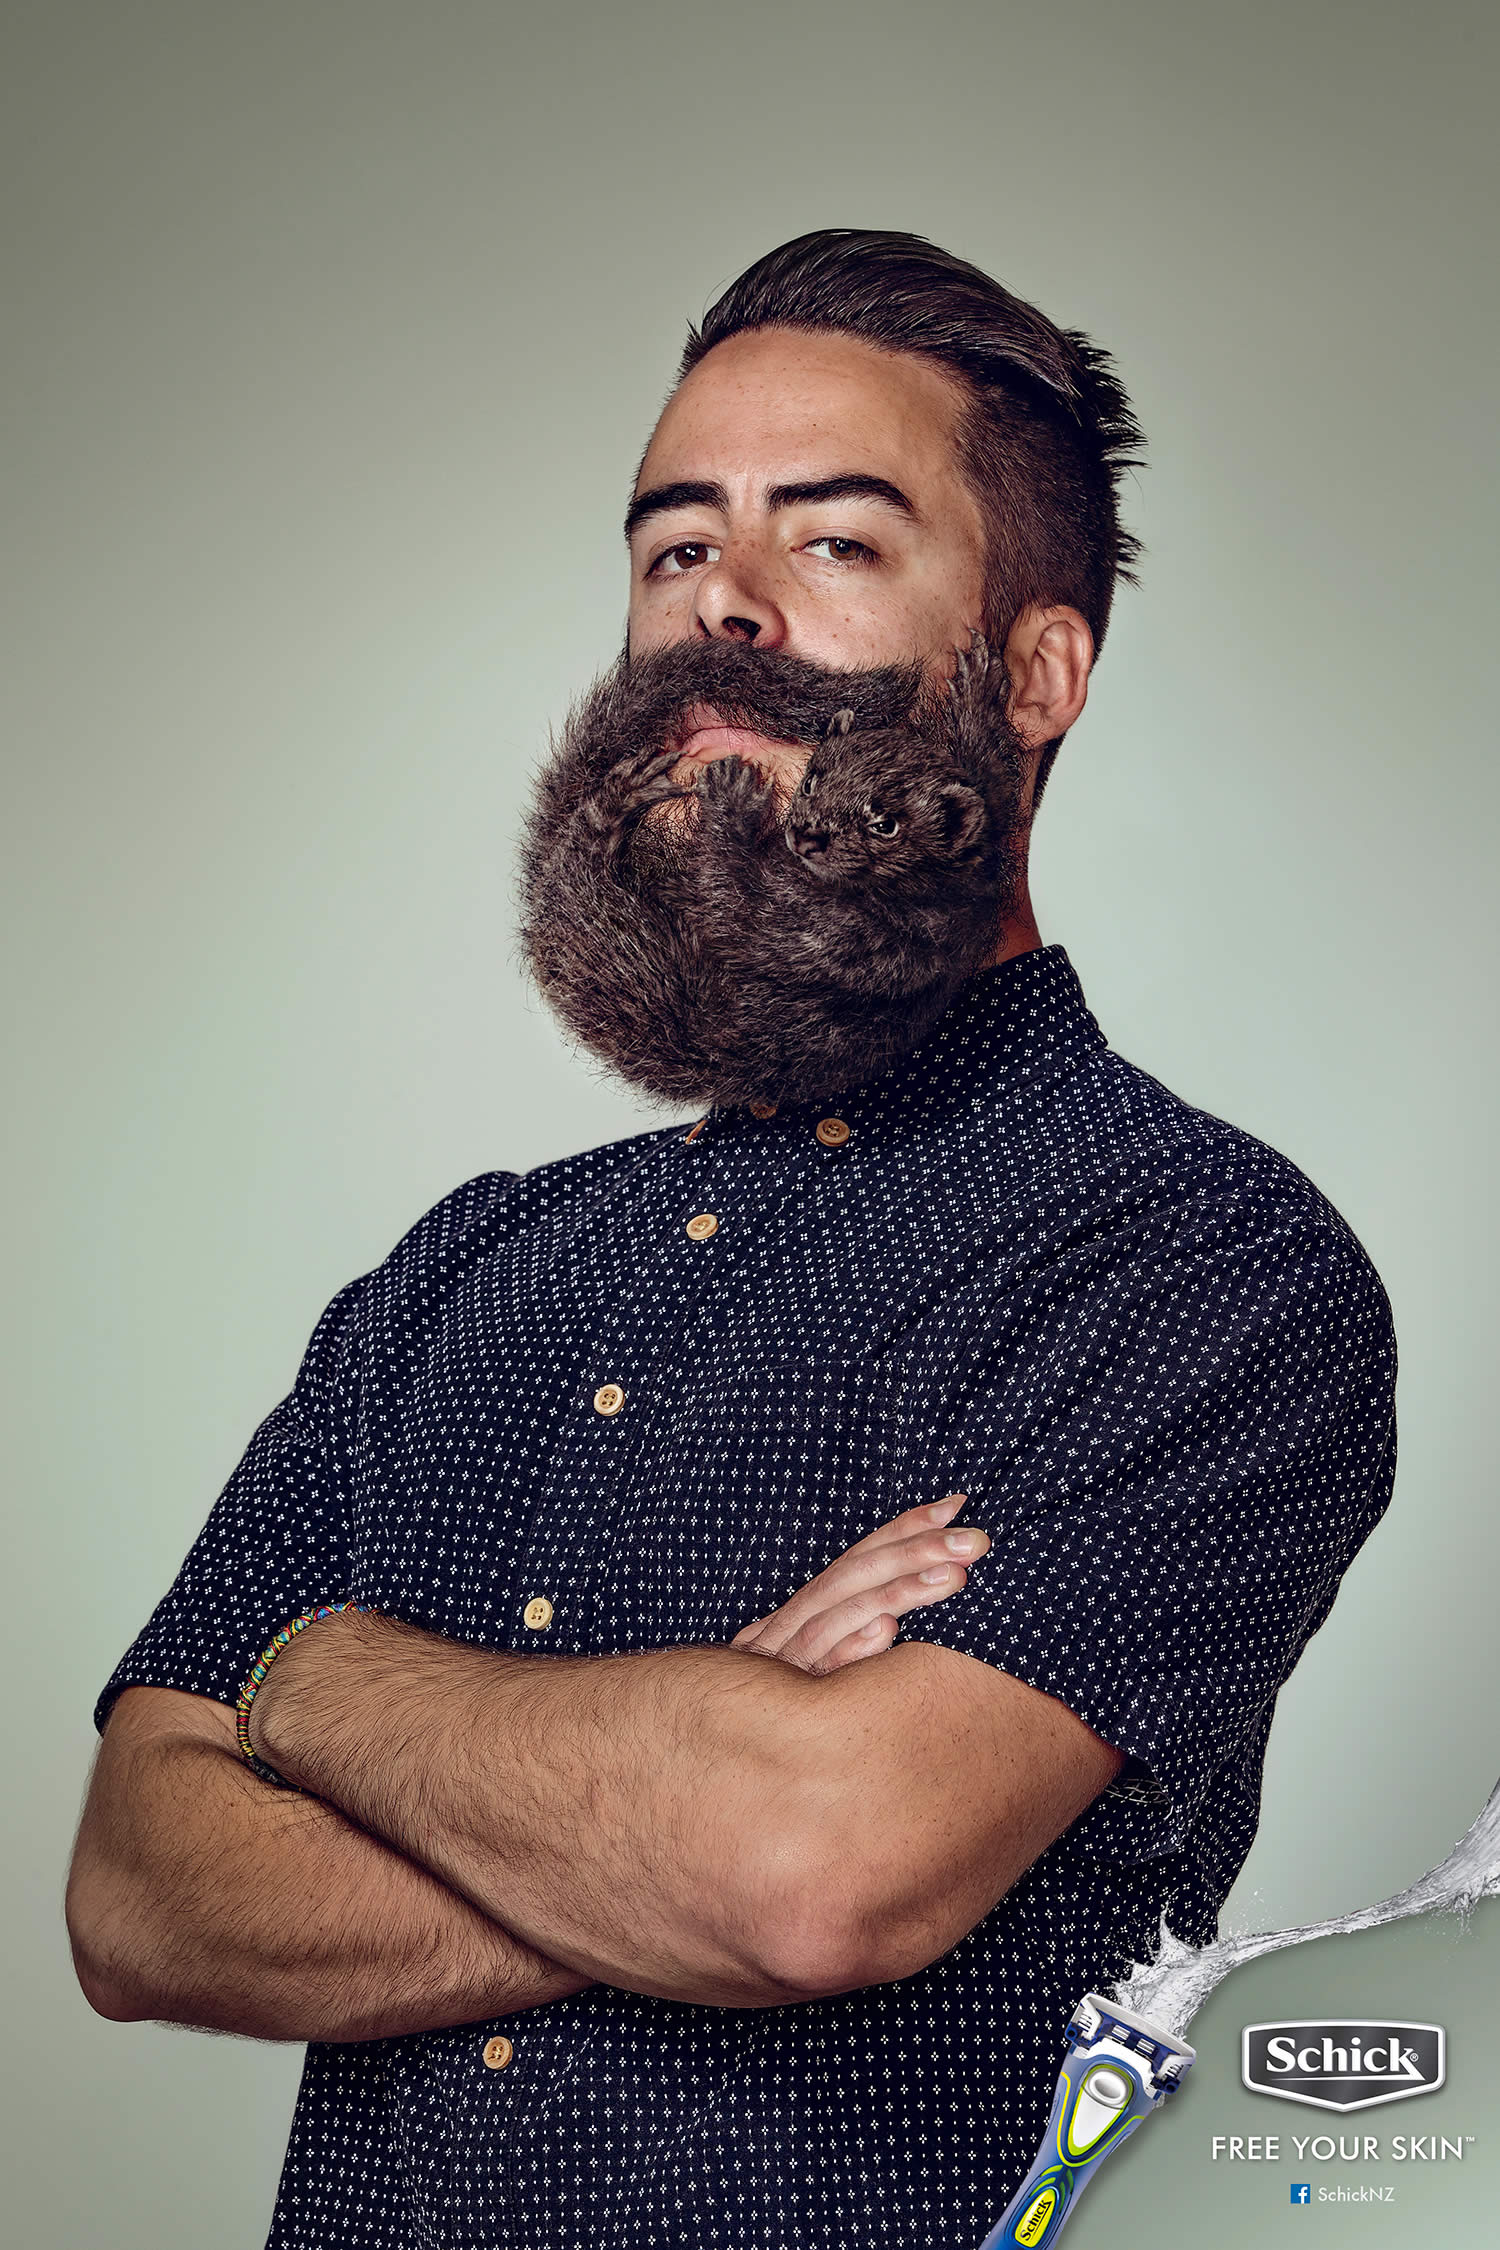 Man with dark brown squirrel beard, Electric Art / Schick NZ. By Sharpe + Associates Inc.